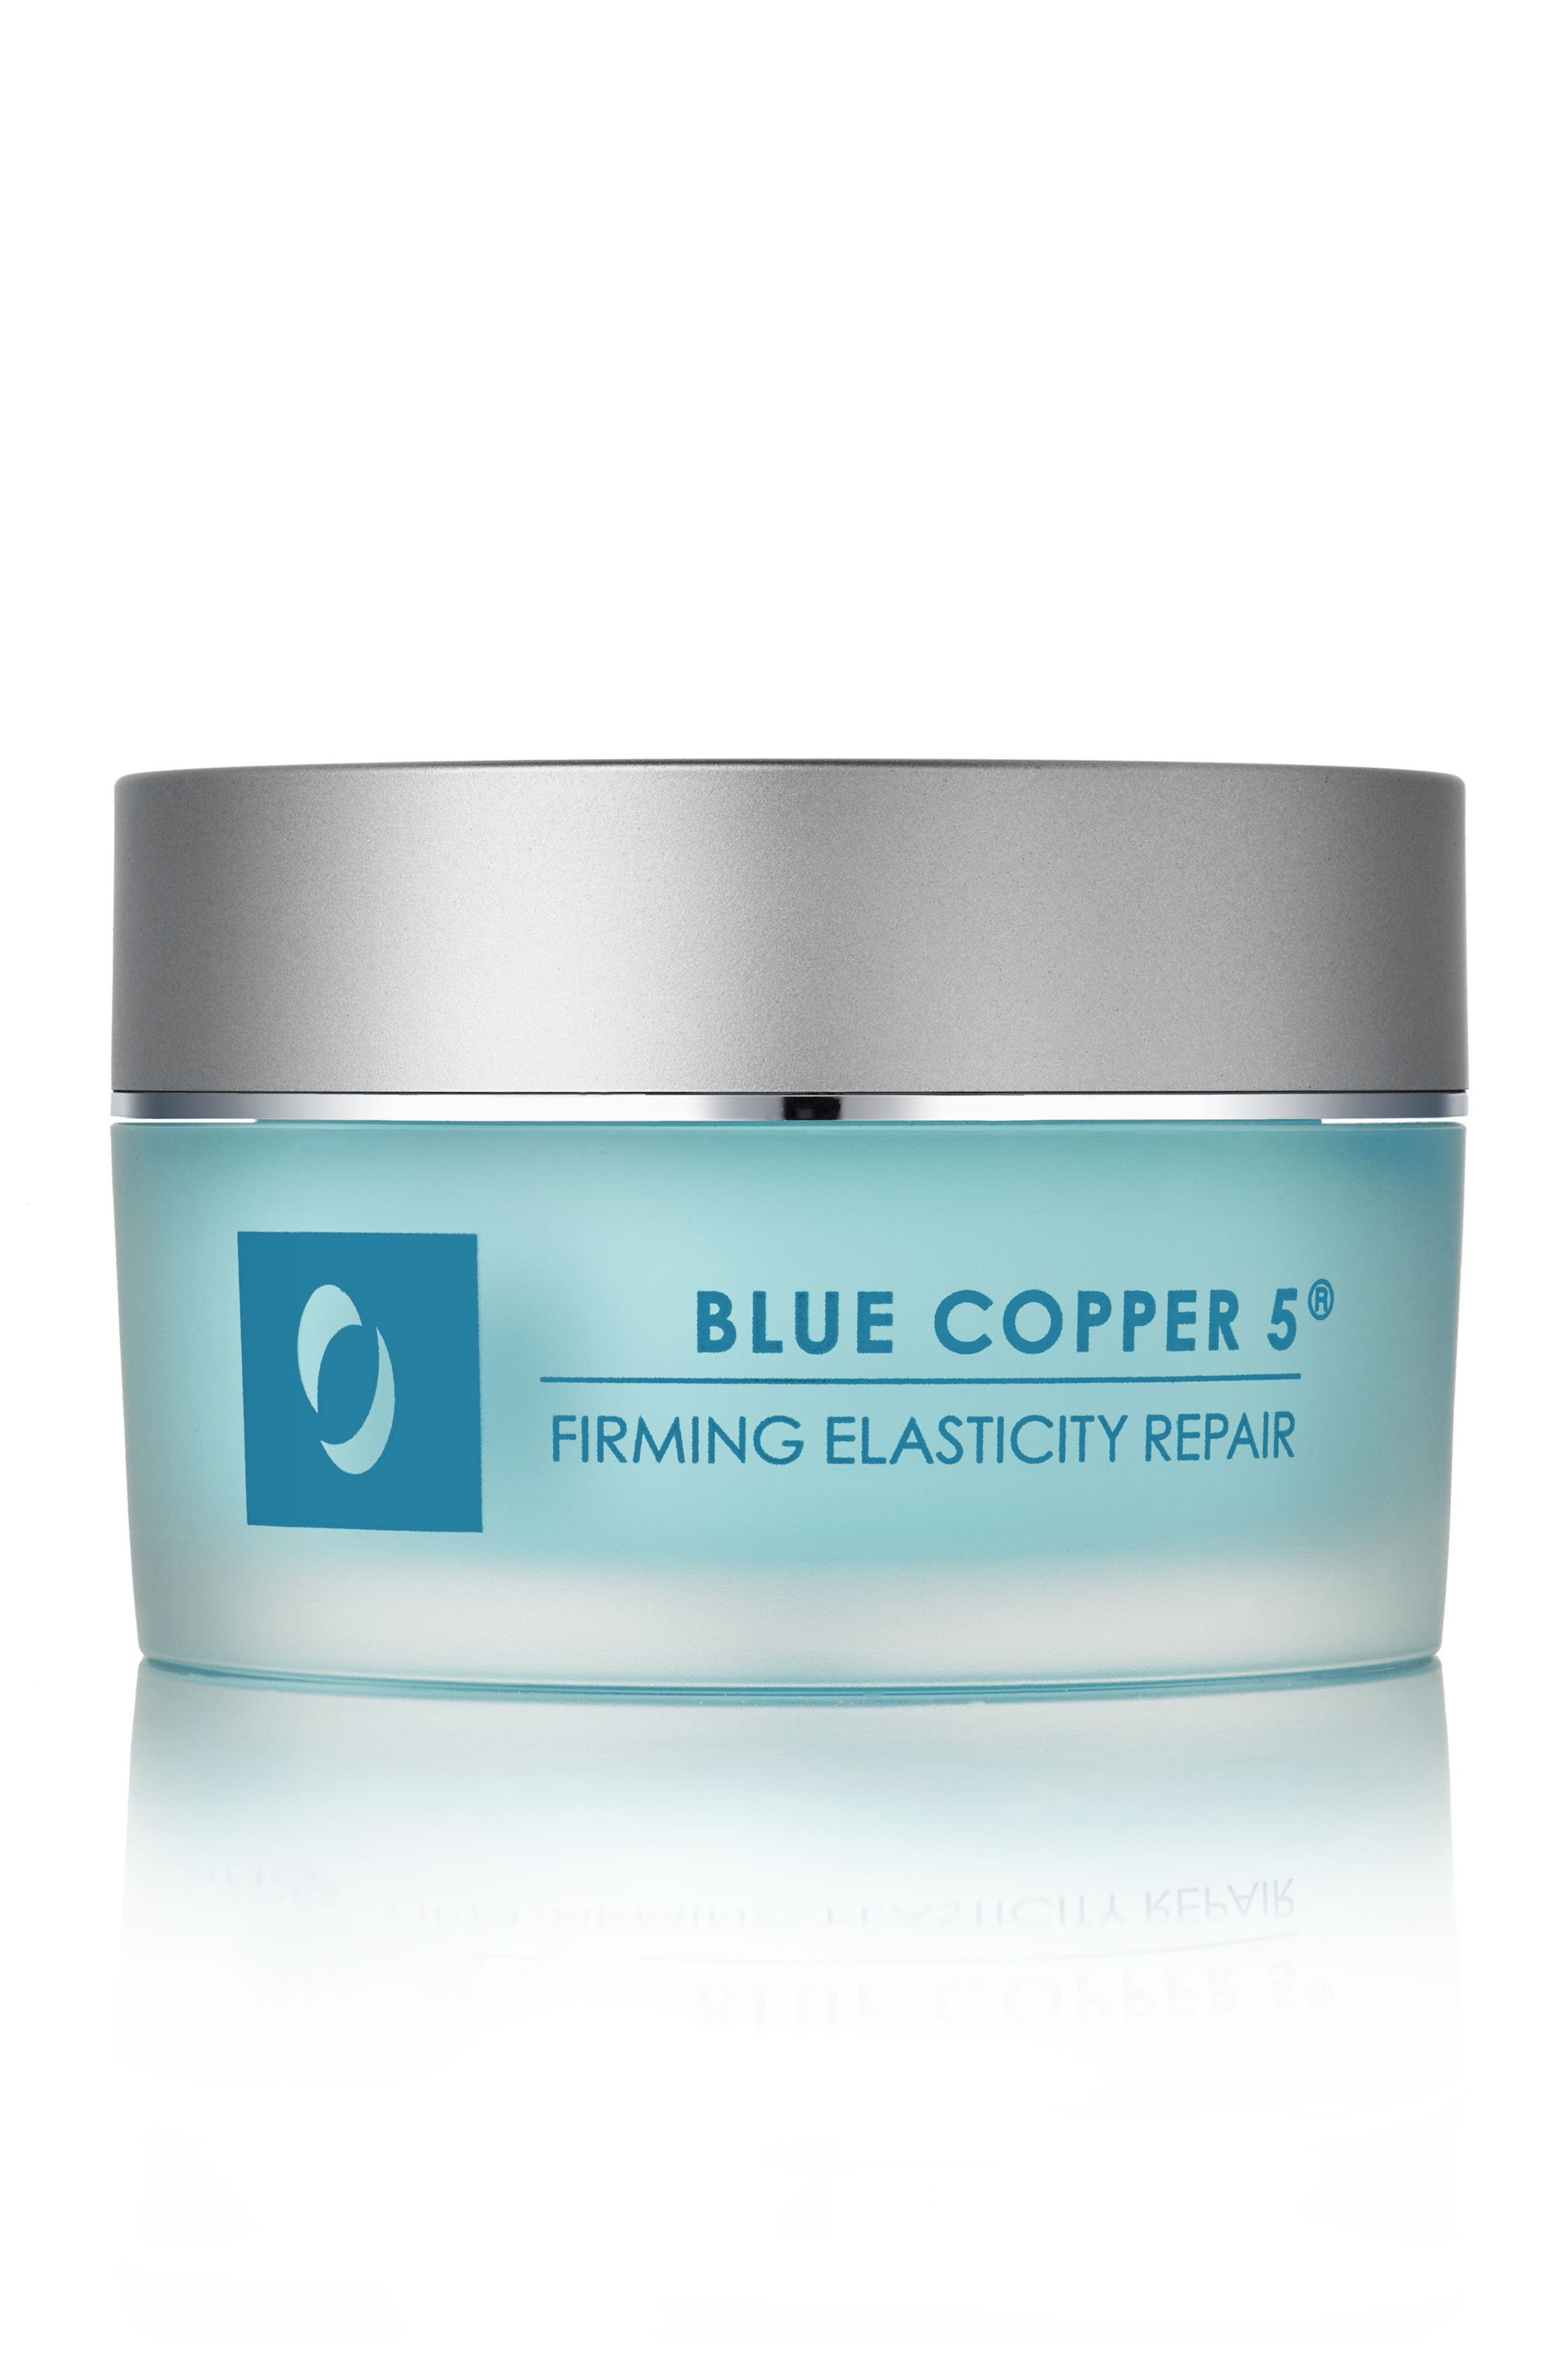 Blue Copper 5 Firming Elasticity Repair,                             Main thumbnail 1, color,                             NO COLOR